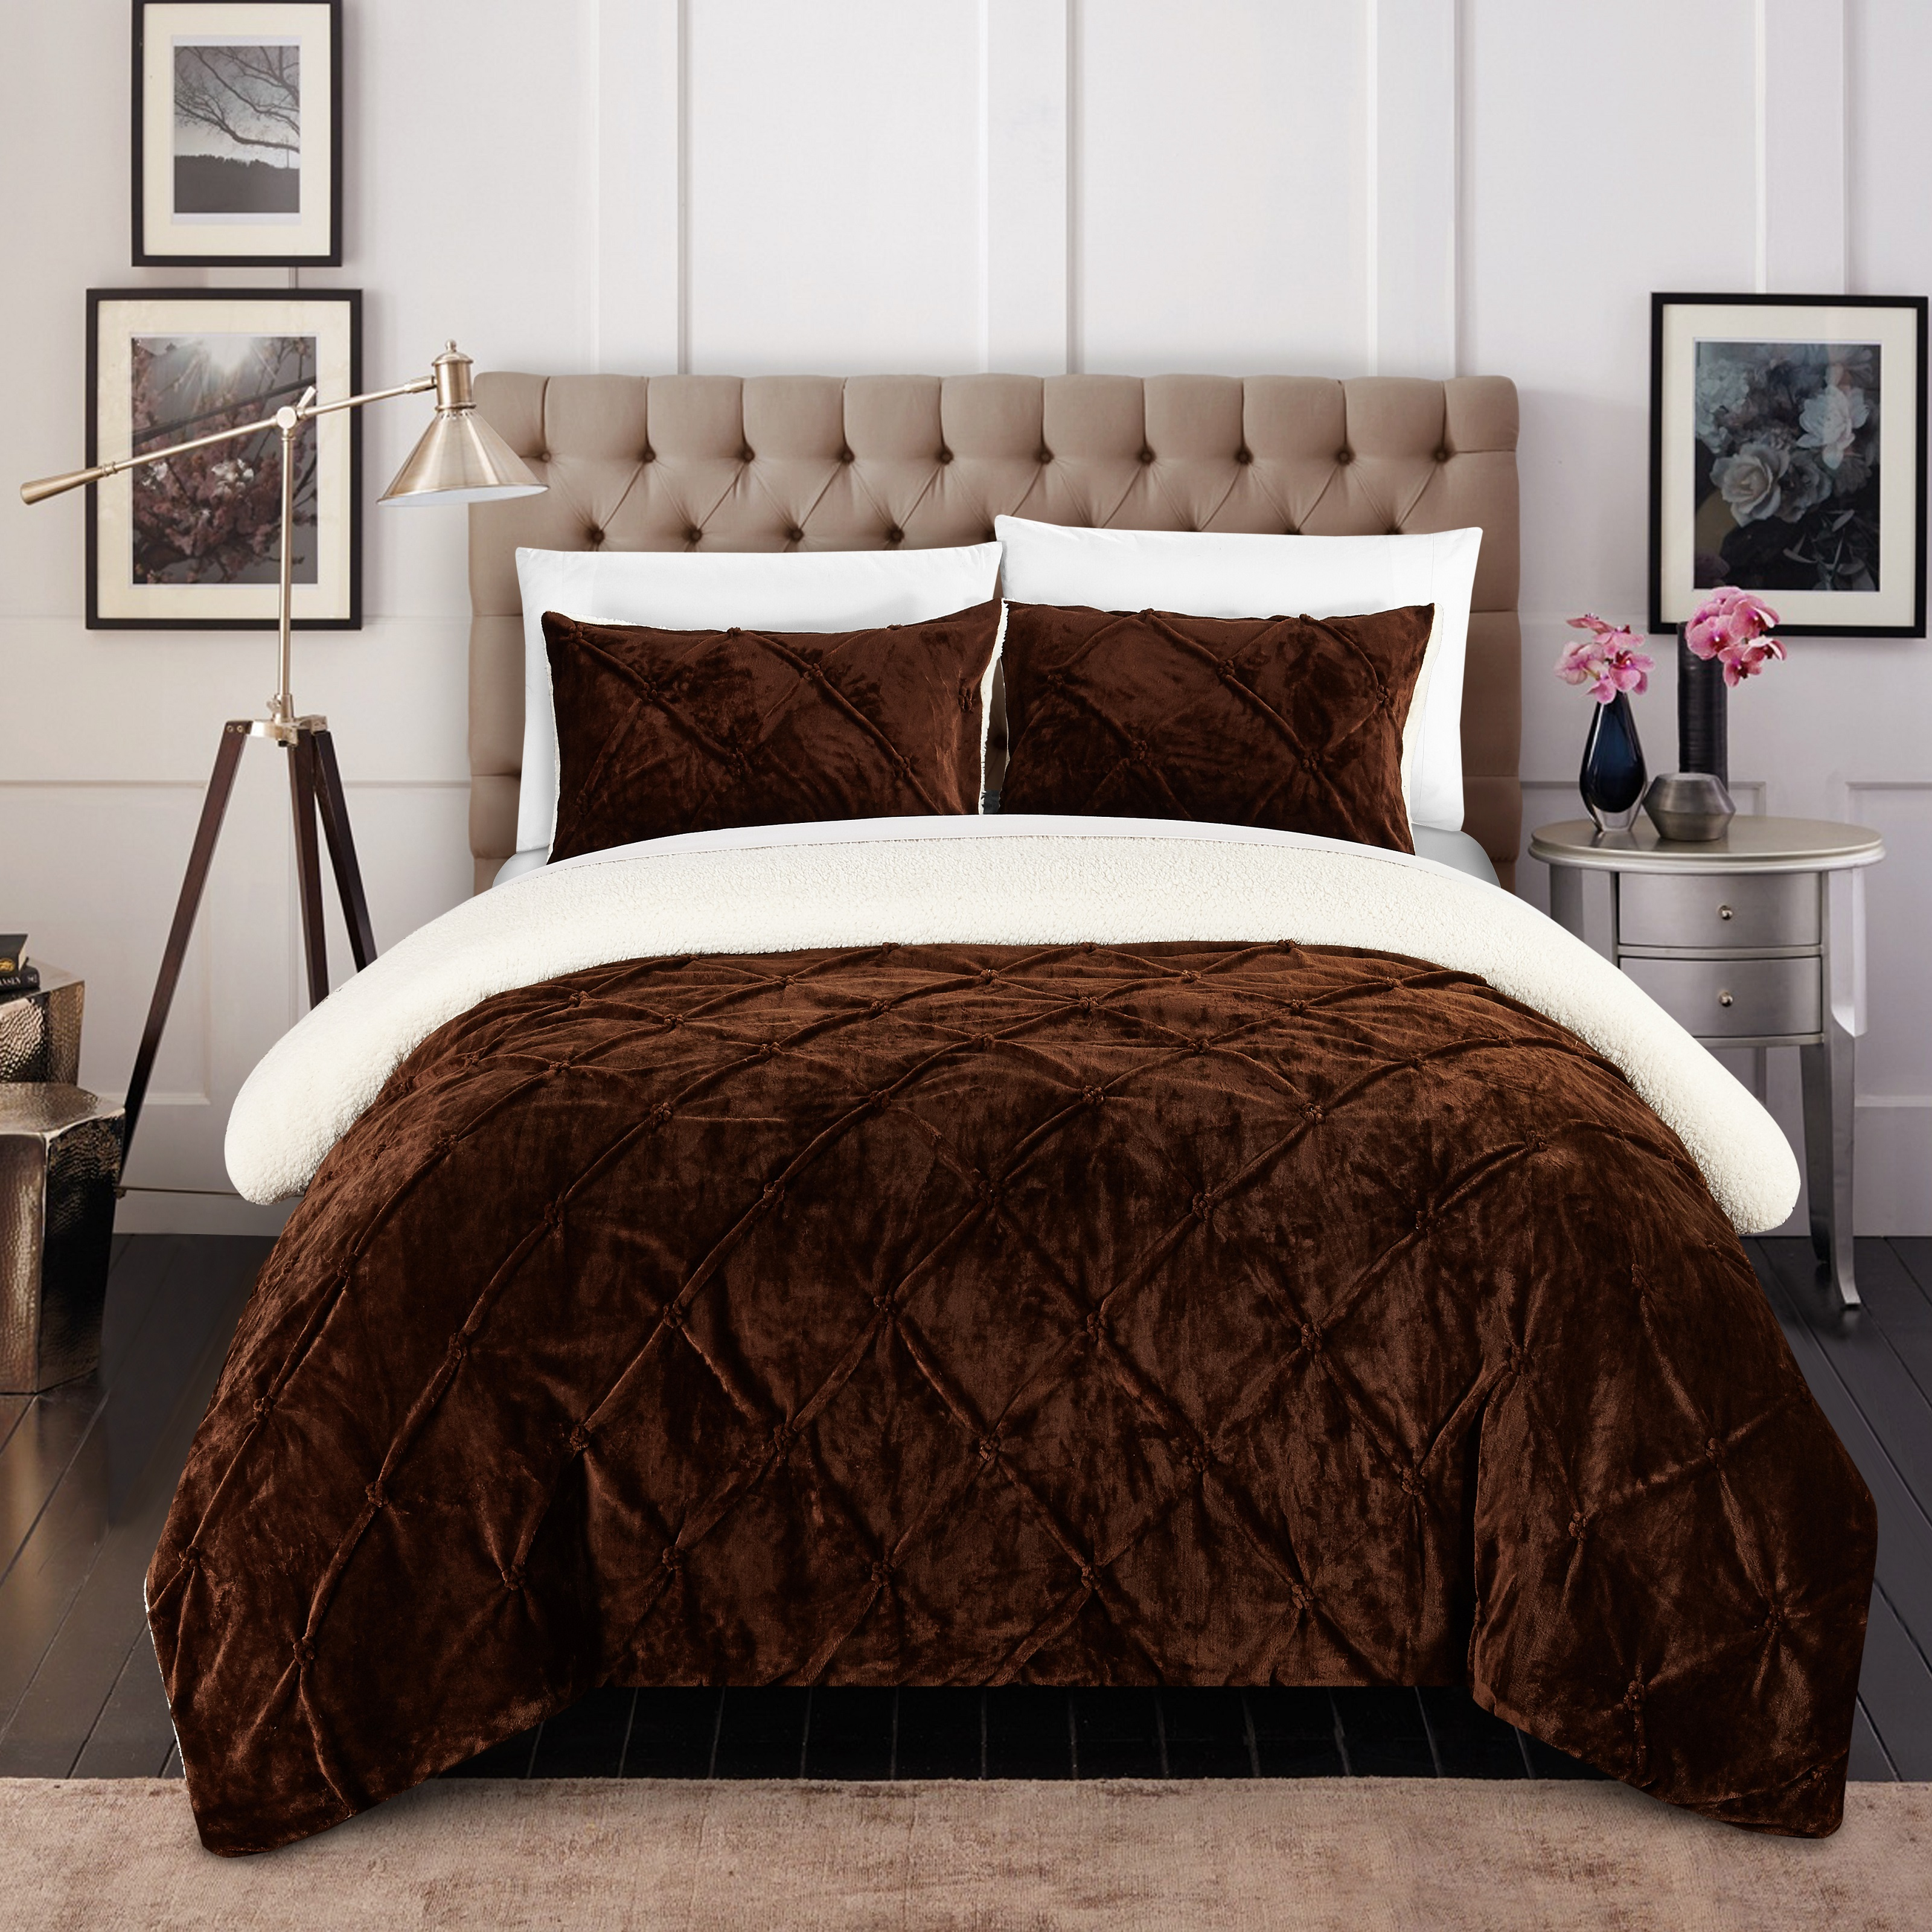 Chic Home 2-Piece Chiara Pinch Pleated Ruffled and Pin tuck Sherpa Lined Twin X-Long Bed In a Bag Comforter Set Brown